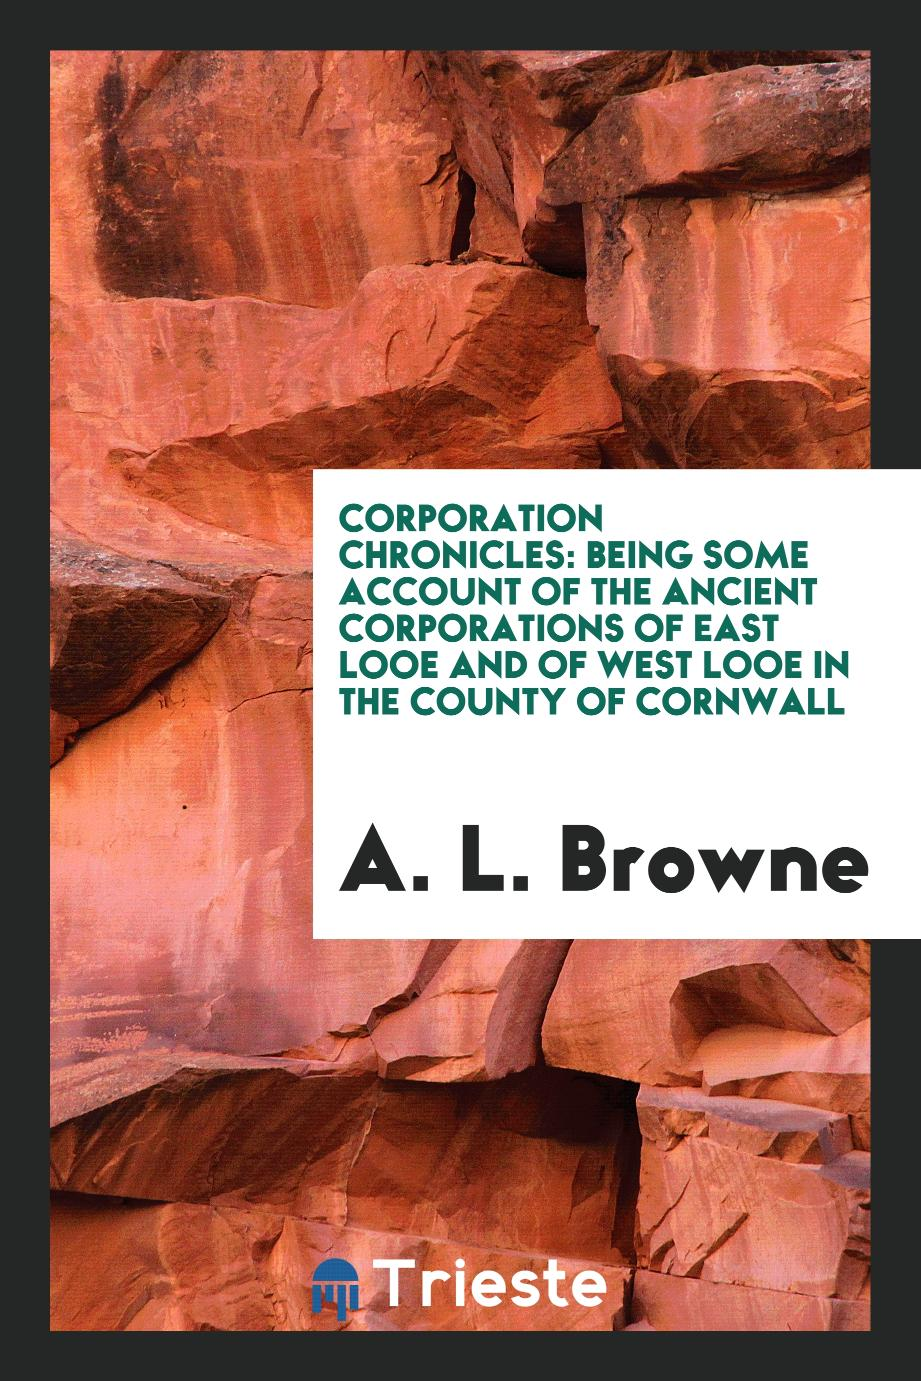 Corporation Chronicles: Being Some Account of the Ancient Corporations of East Looe and of West Looe in the County of Cornwall